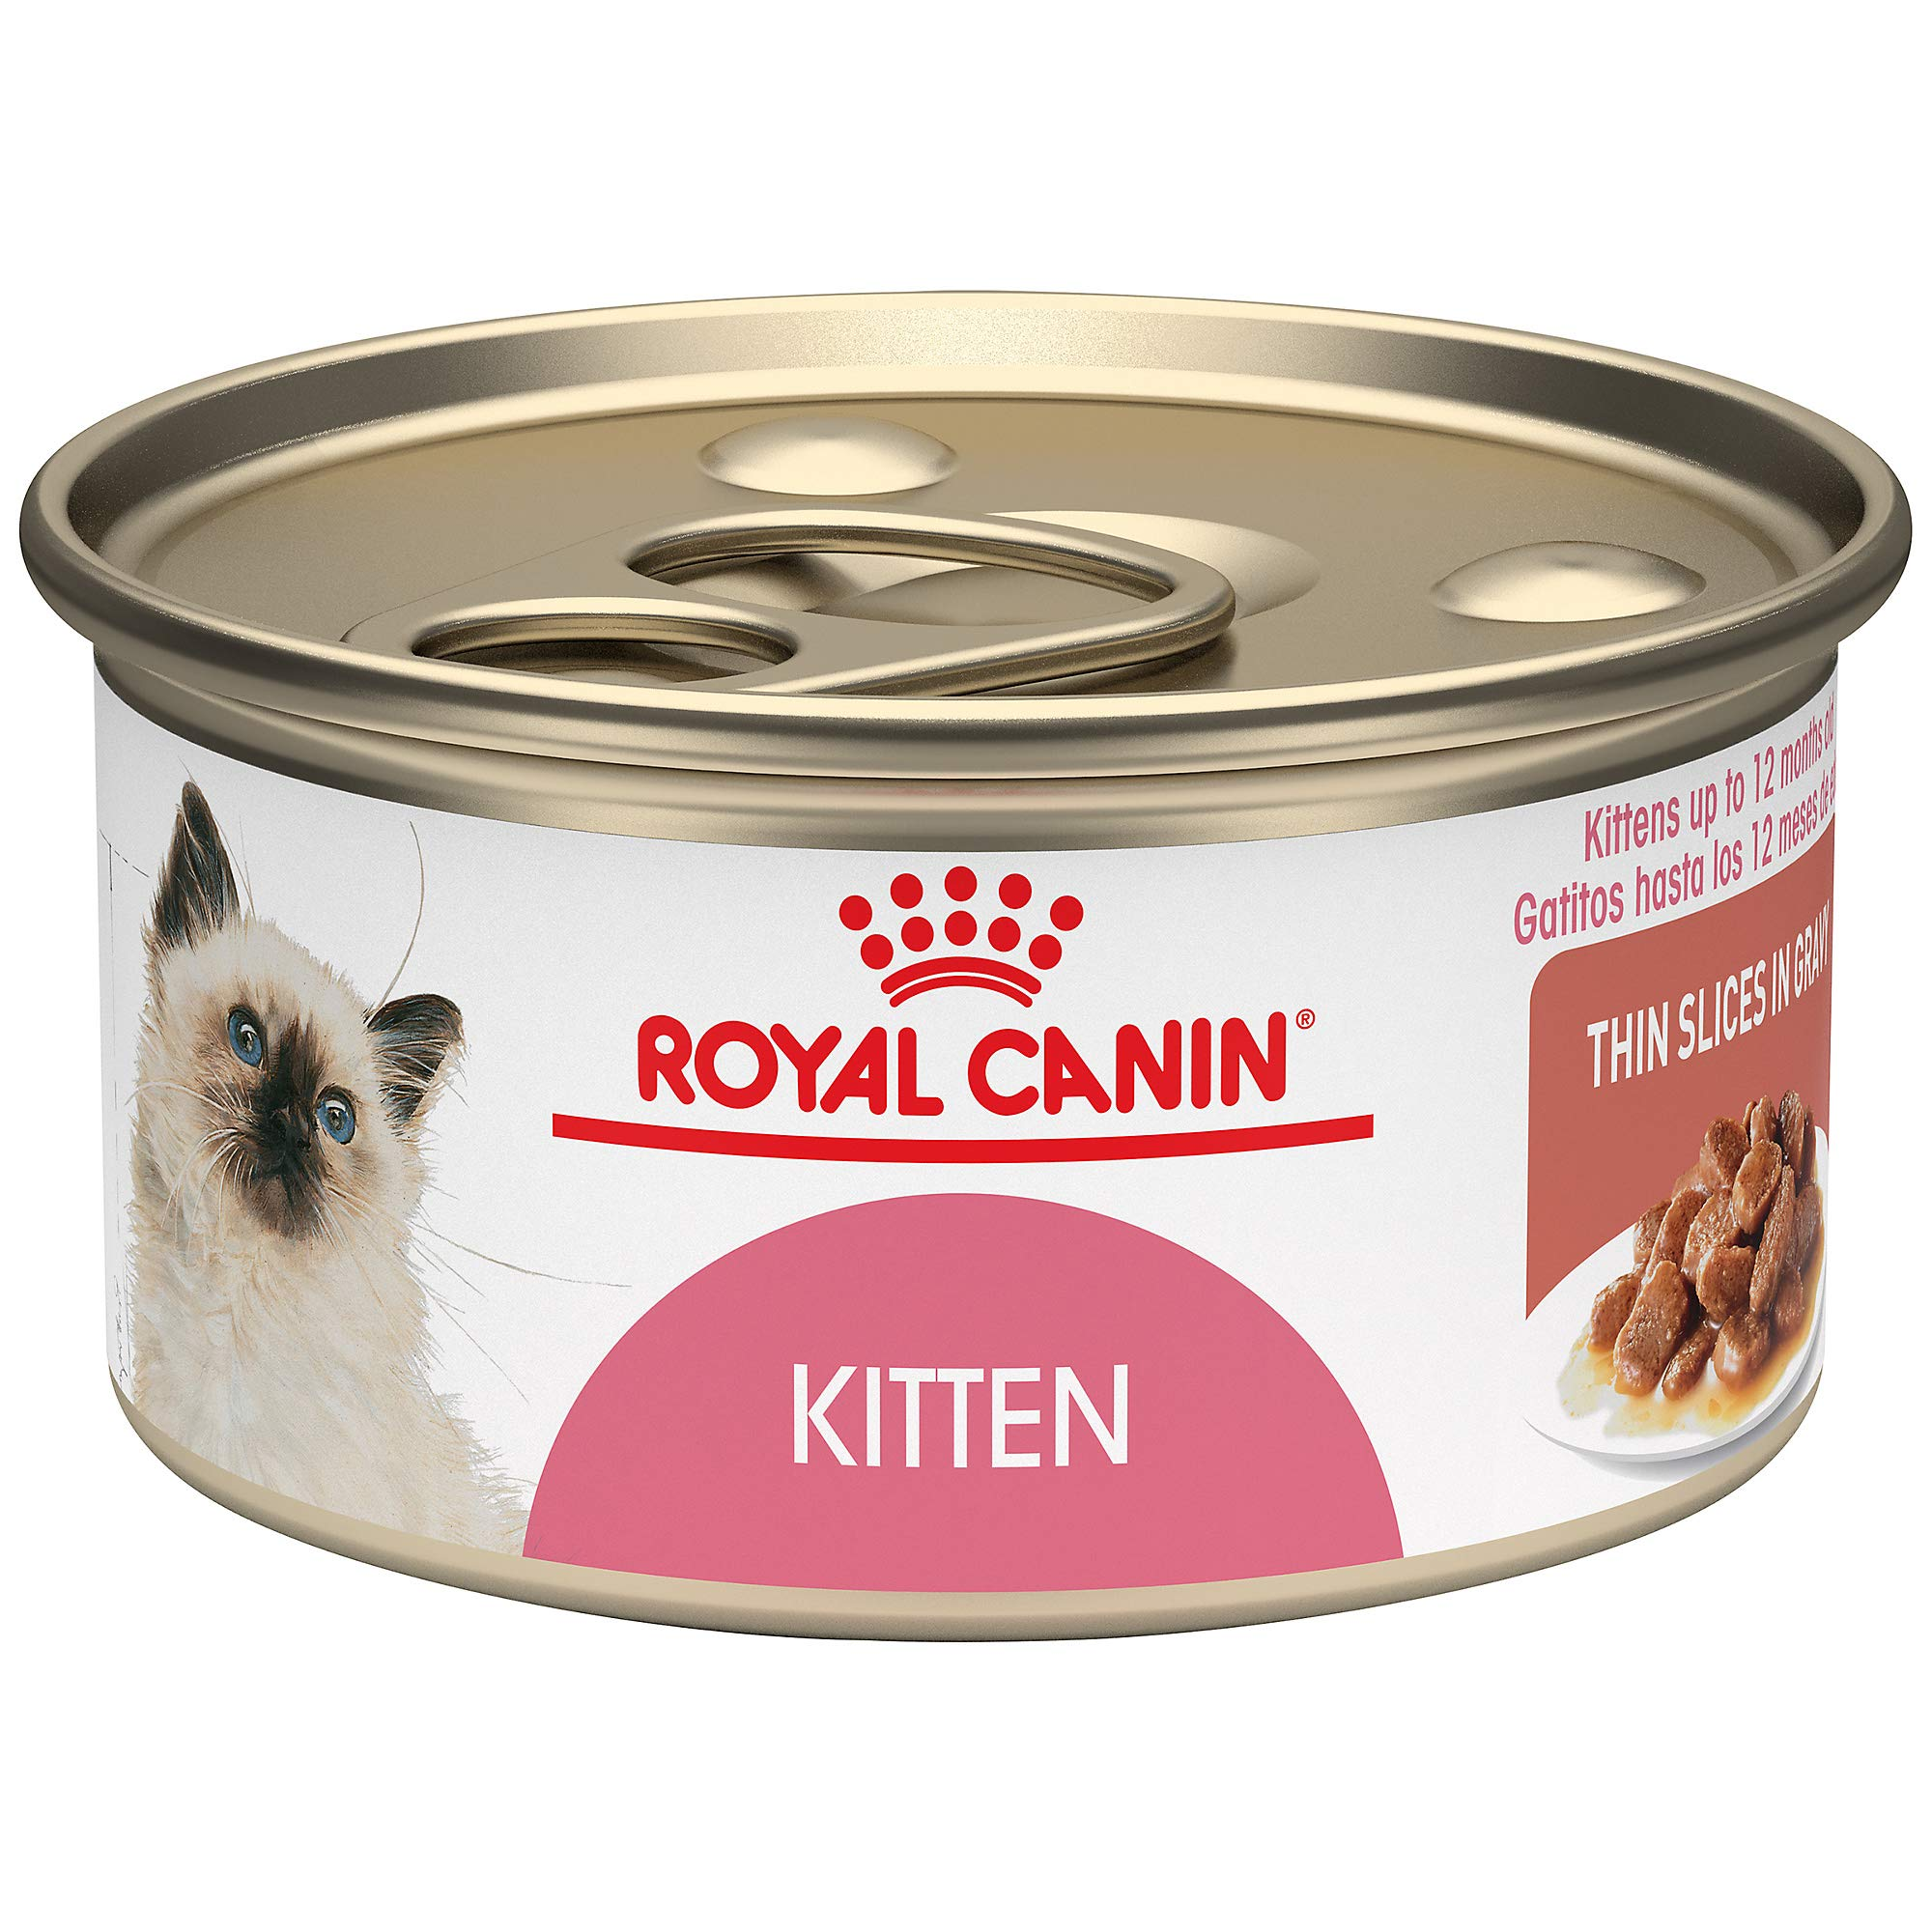 Royal Canin Feline Health Nutrition Thin Slices in Gravy Wet Kitten Food, 3 Ounce (Pack of 24) by Royal Canin